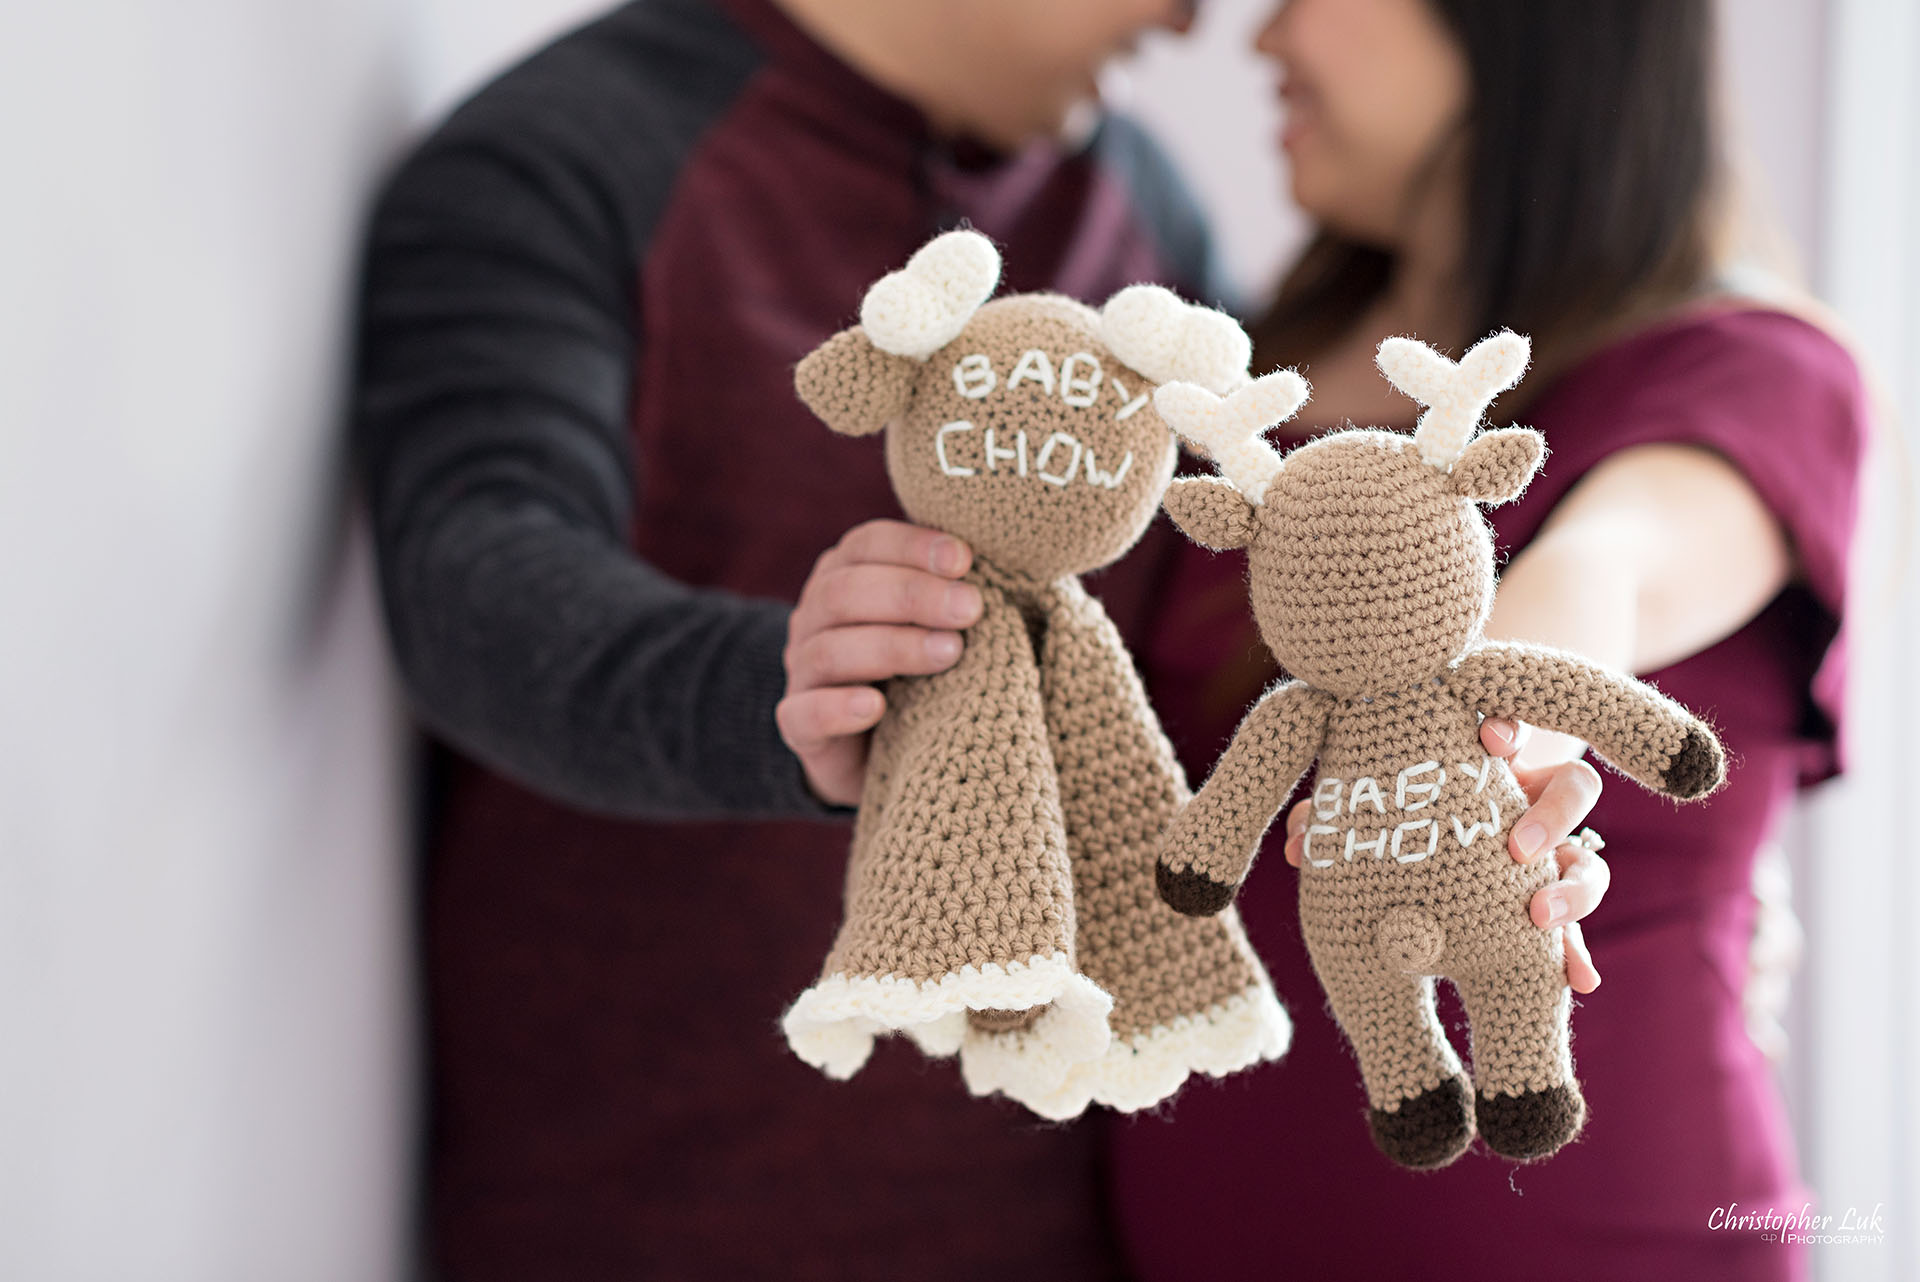 Christopher Luk Toronto Wedding Family Maternity Photographer - Markham Richmond Hill Toronto Natural Candid Photojournalistic Mom Dad Husband Wife Baby Bump Baby Pregnant Pregnancy Stuffed Animal Moose Elk Smile Close Stitching Name